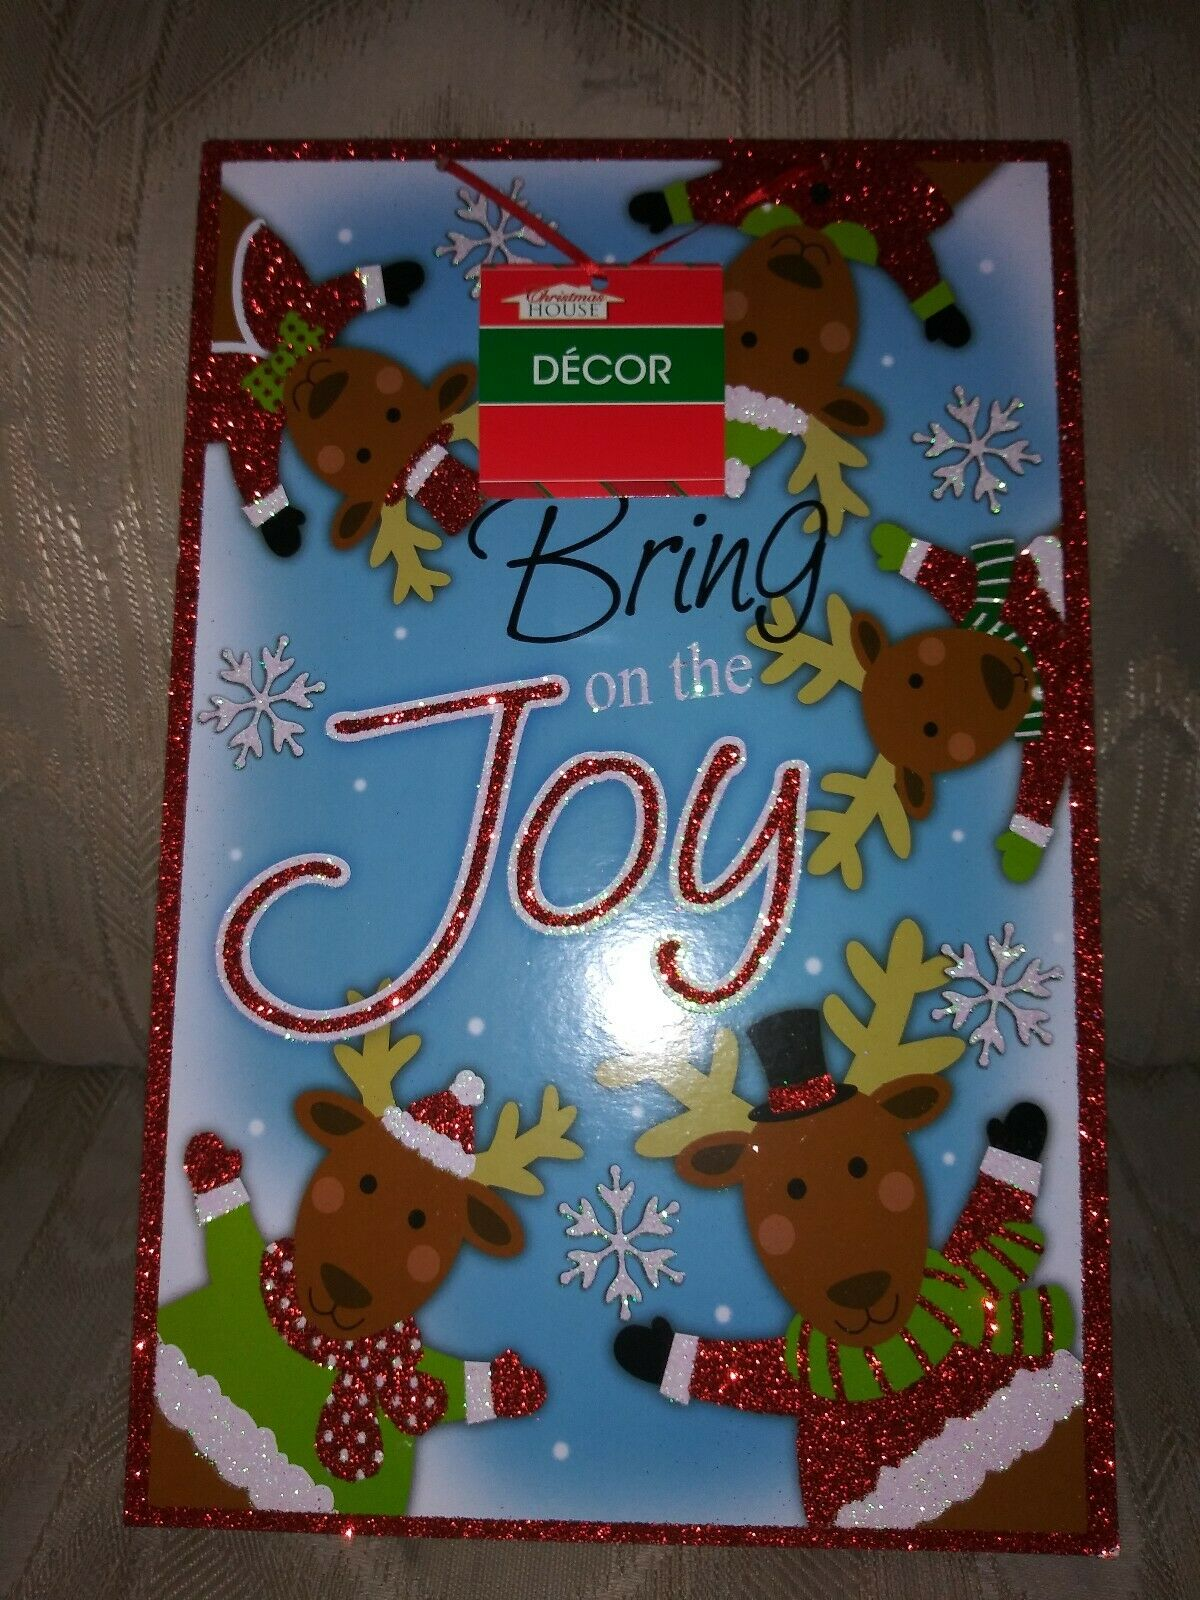 Christmas Home Decor Bring On The Joy Wall Art Sign Xmas Reindeer Snowflakes For Sale Online